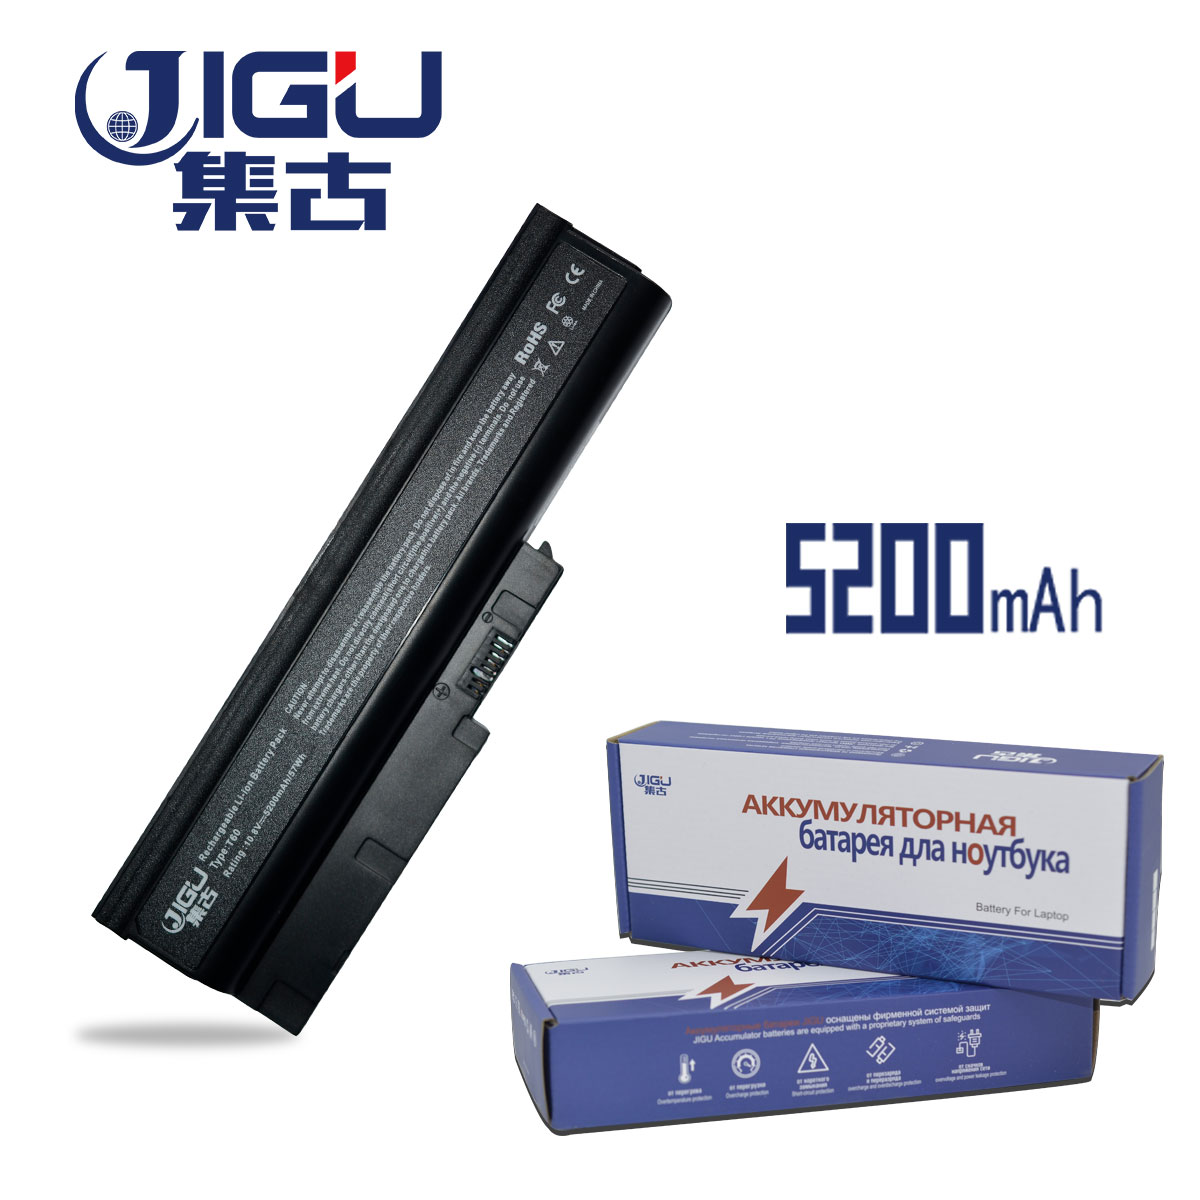 JIGU 6 Cells Laptop Battery For IBM ThinkPad R60 R60e T60 T60p Z60m Z61e Z61m Z61p FOR Lenovo R500 T500 W500 new original for lenovo for ibm for thinkpad z60 z60m z61m laptop fan